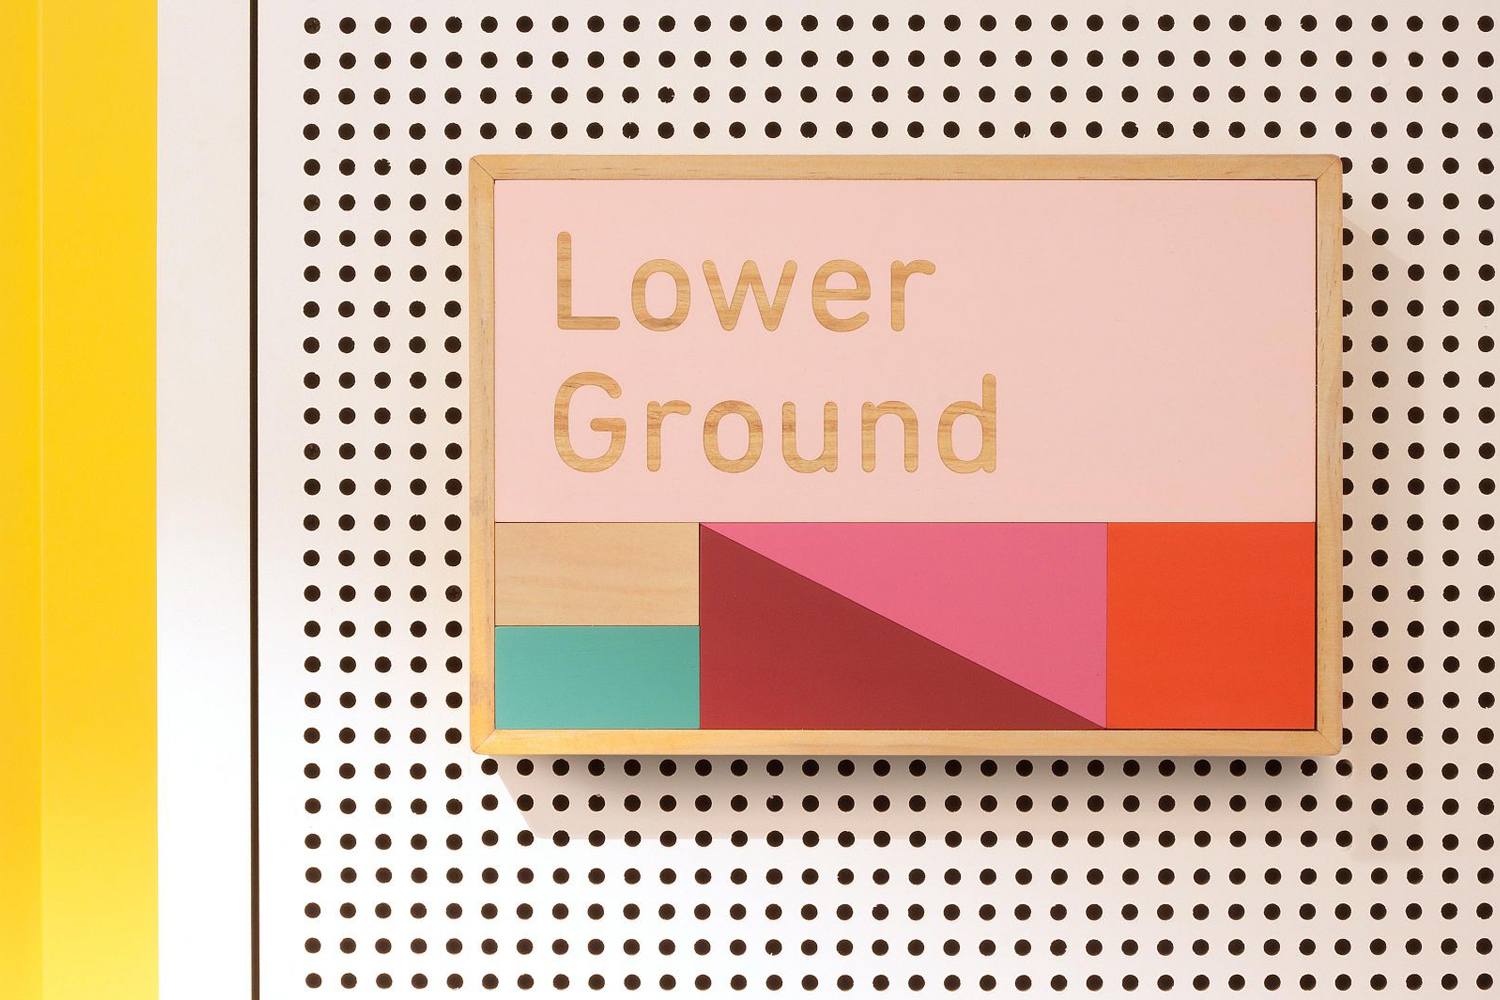 Sign Design – East Sydney Early Learning Centre by Toko, Australia